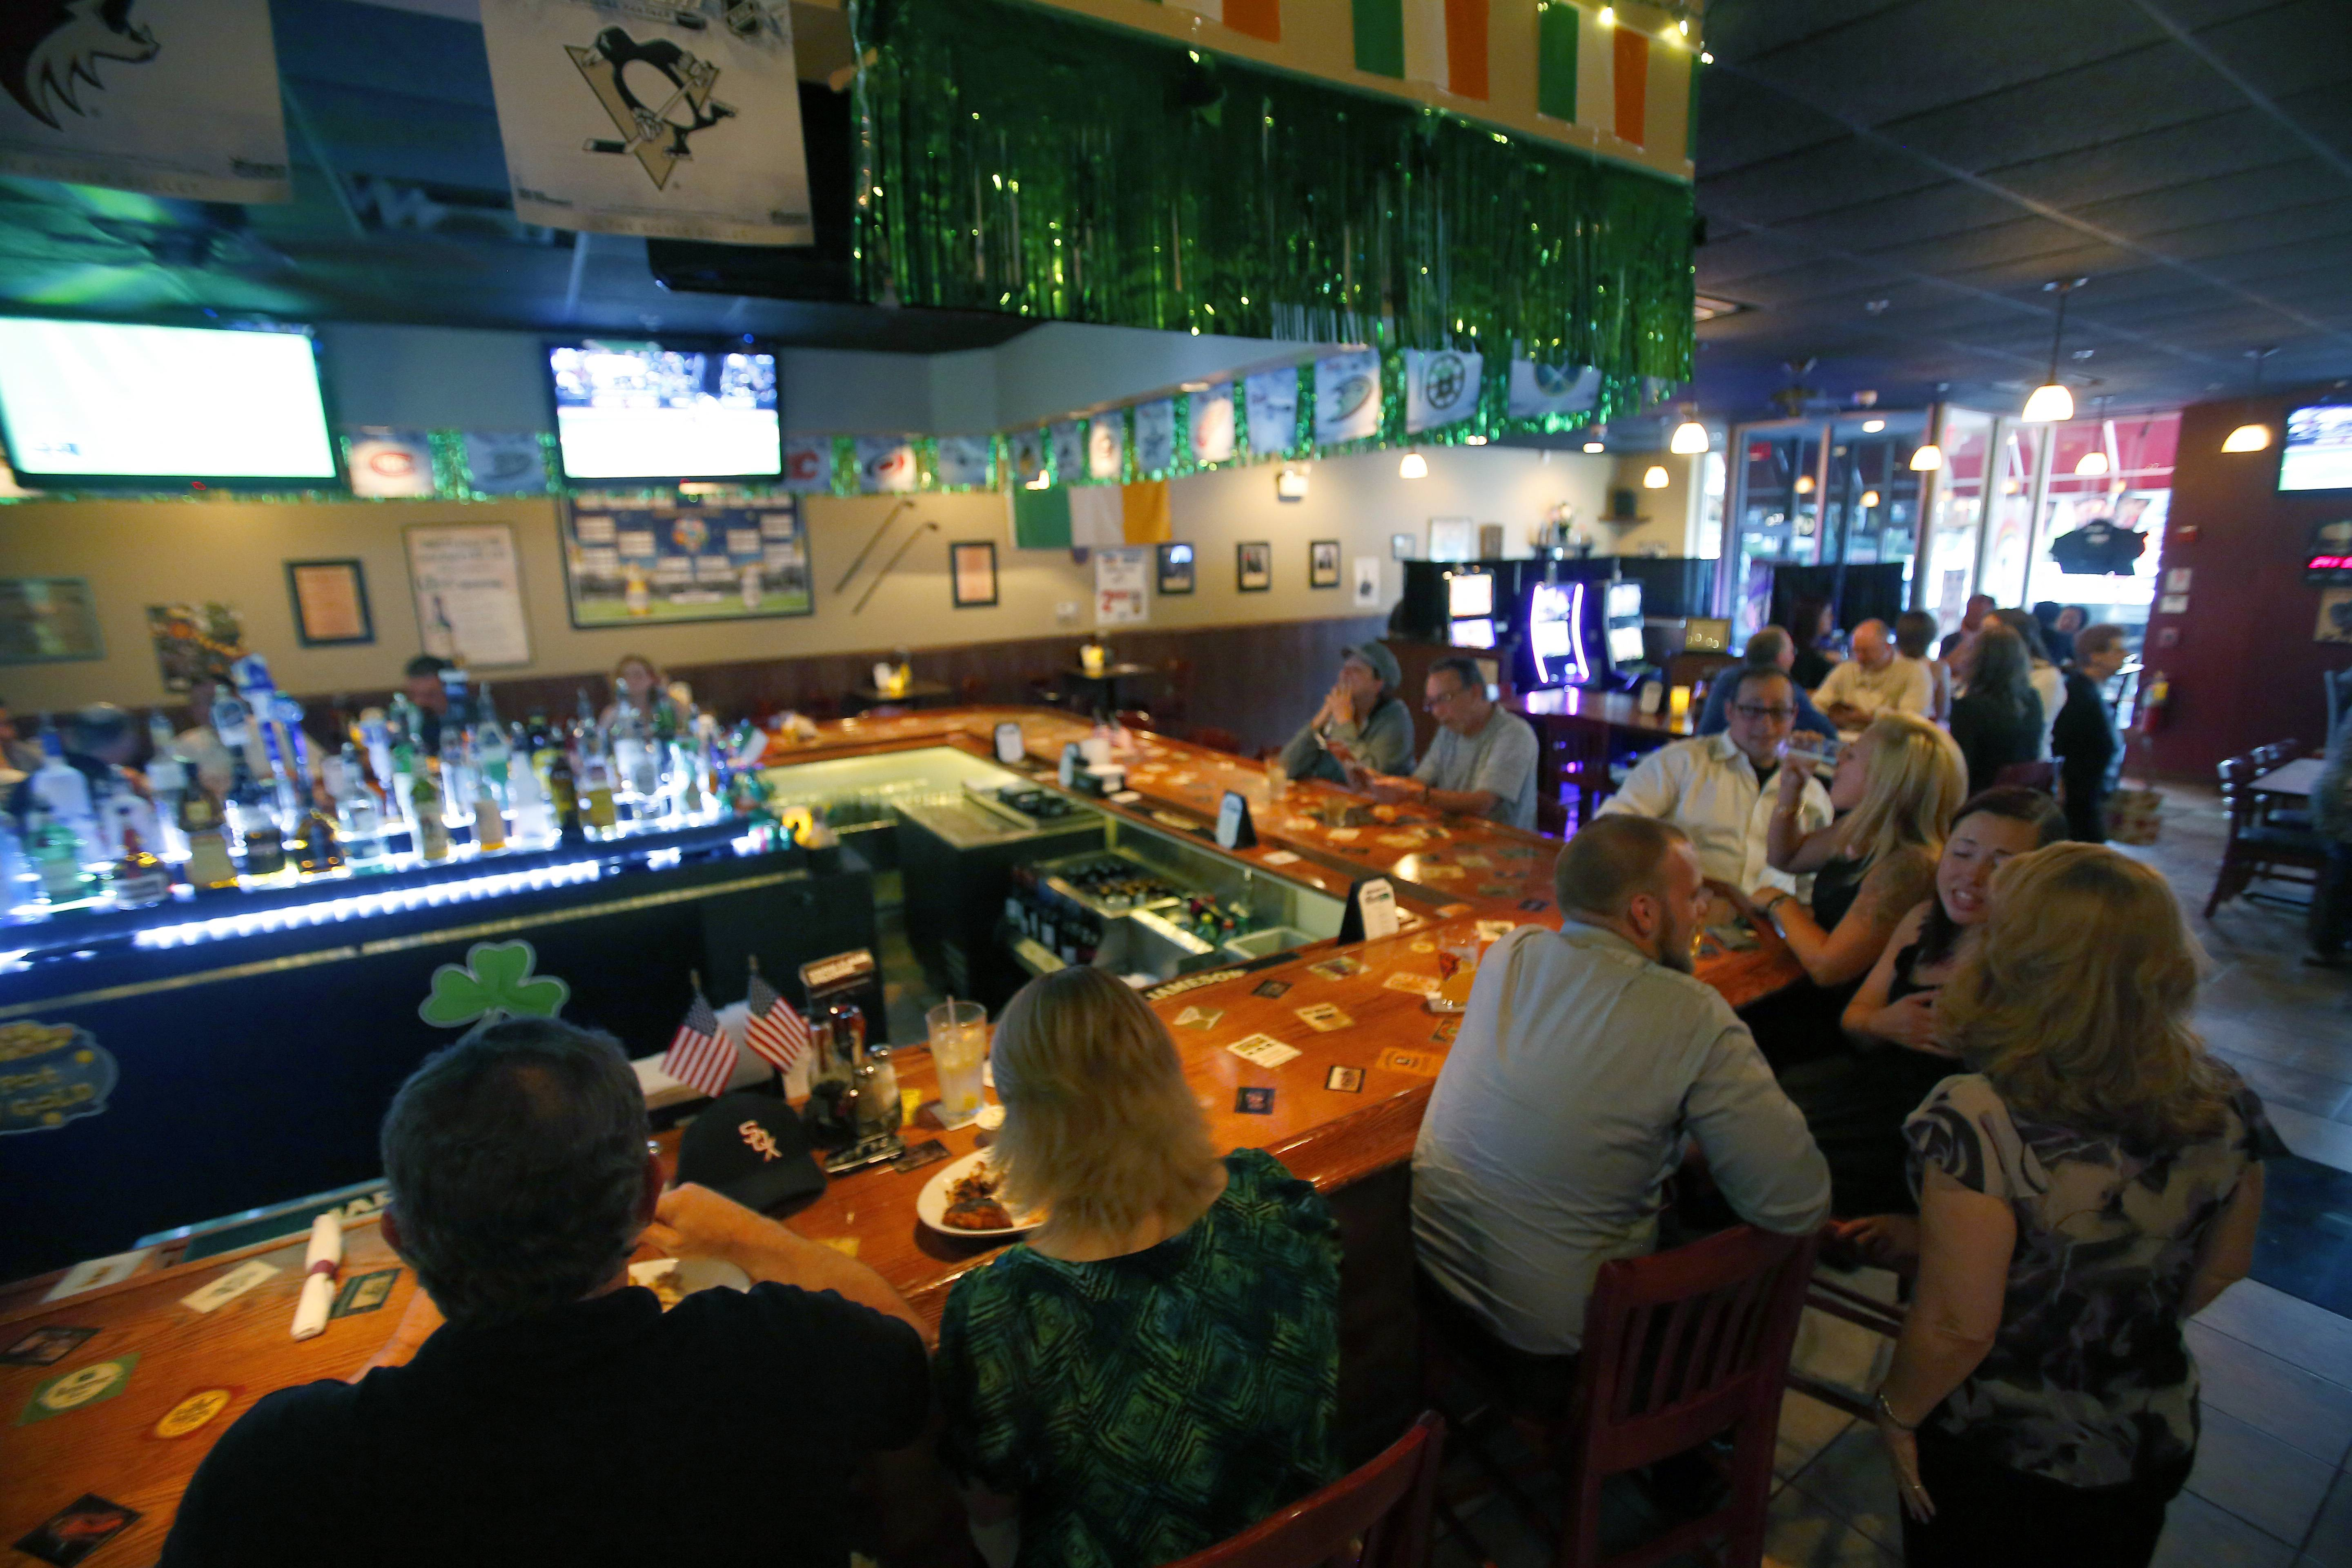 O'Hare's Pub draws on Irish influences as well as a sports bar feel.